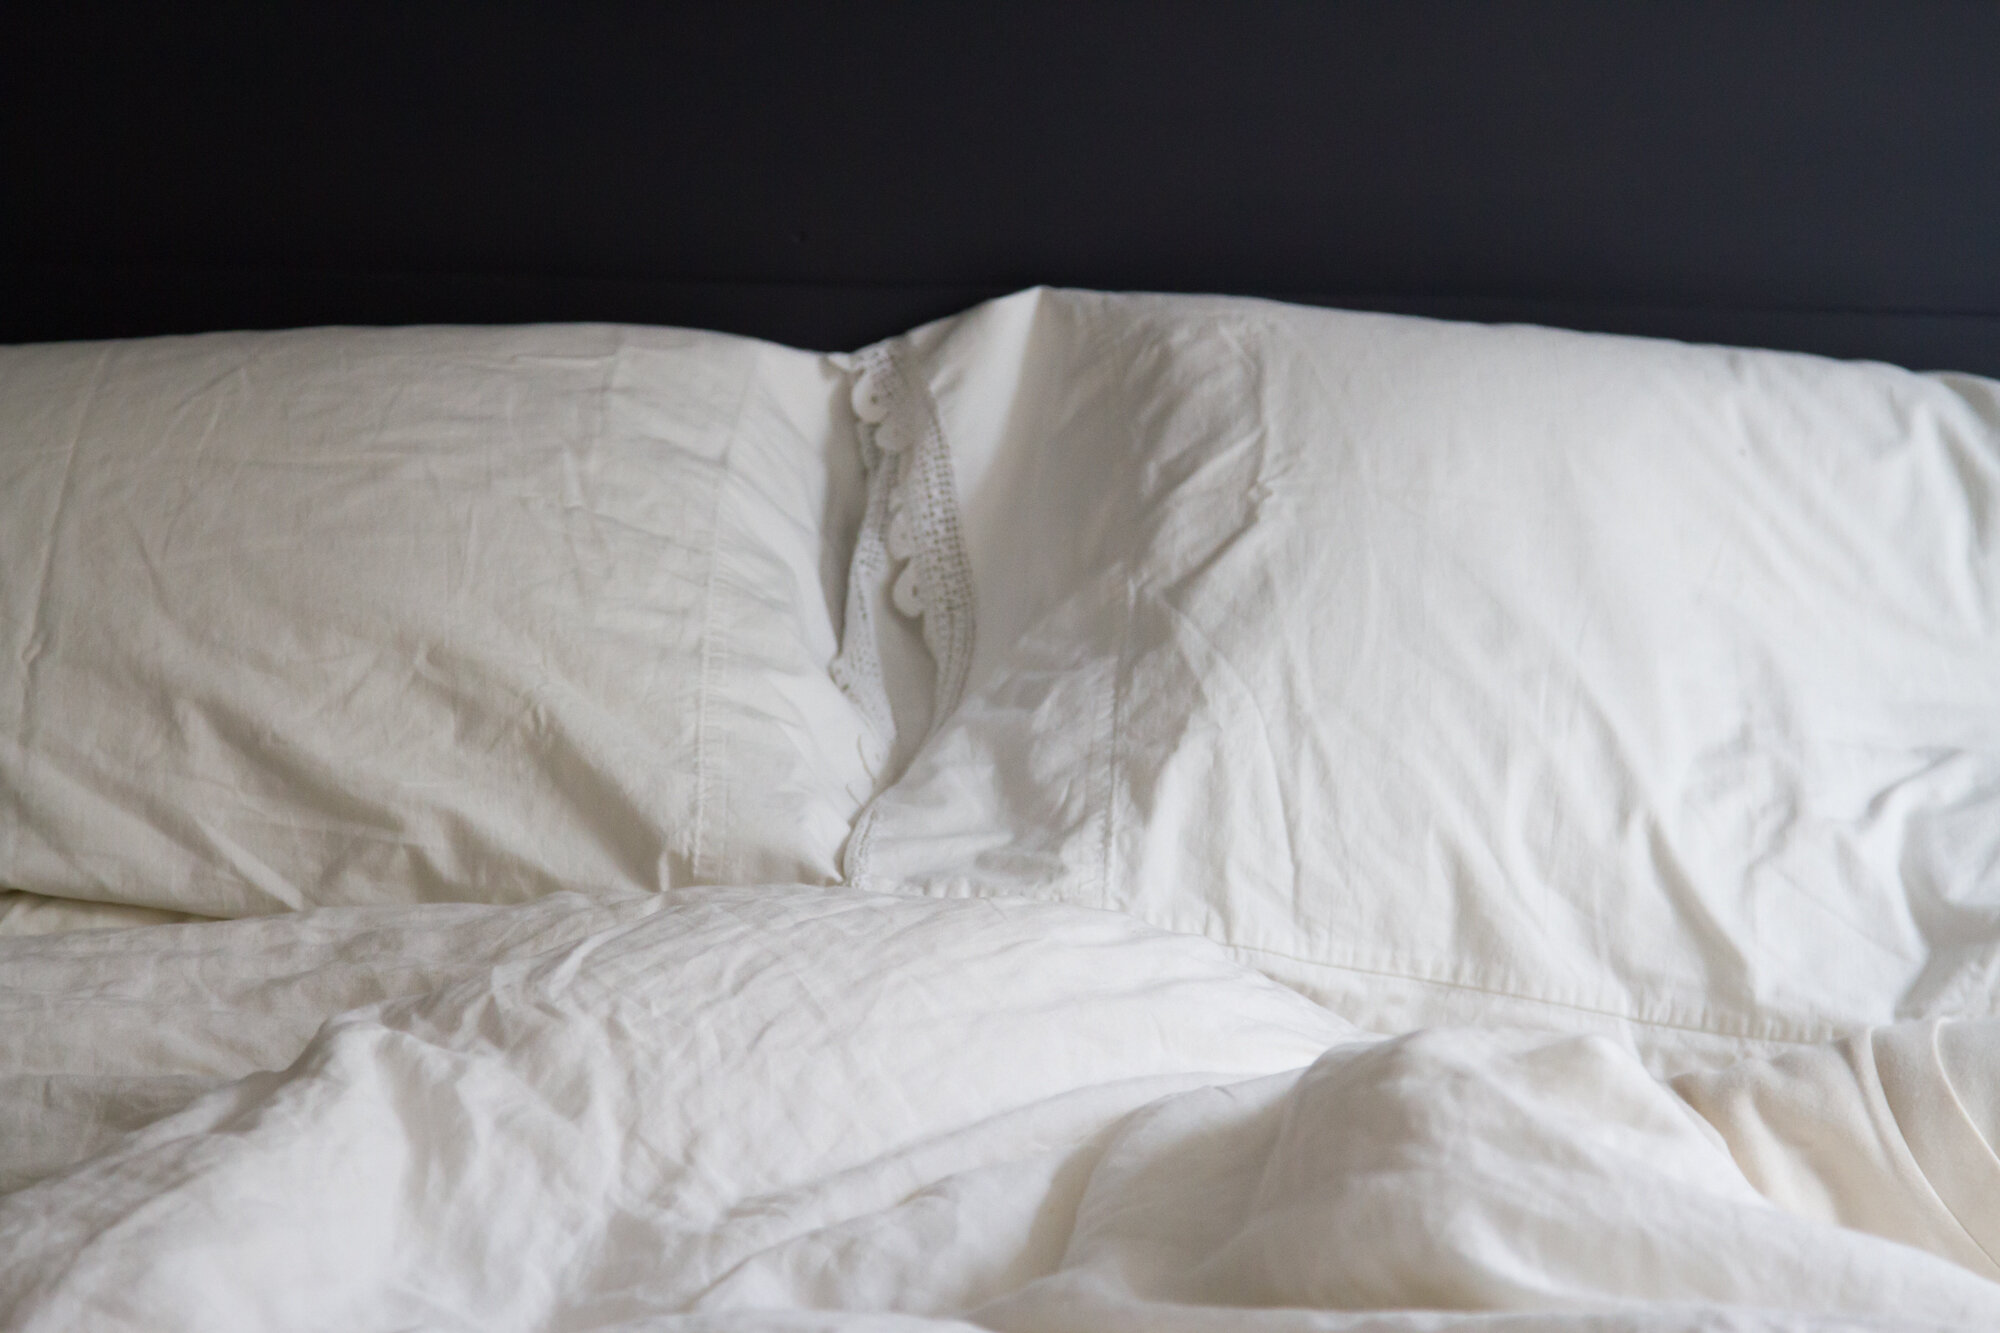 white bed sheets on a blue bed